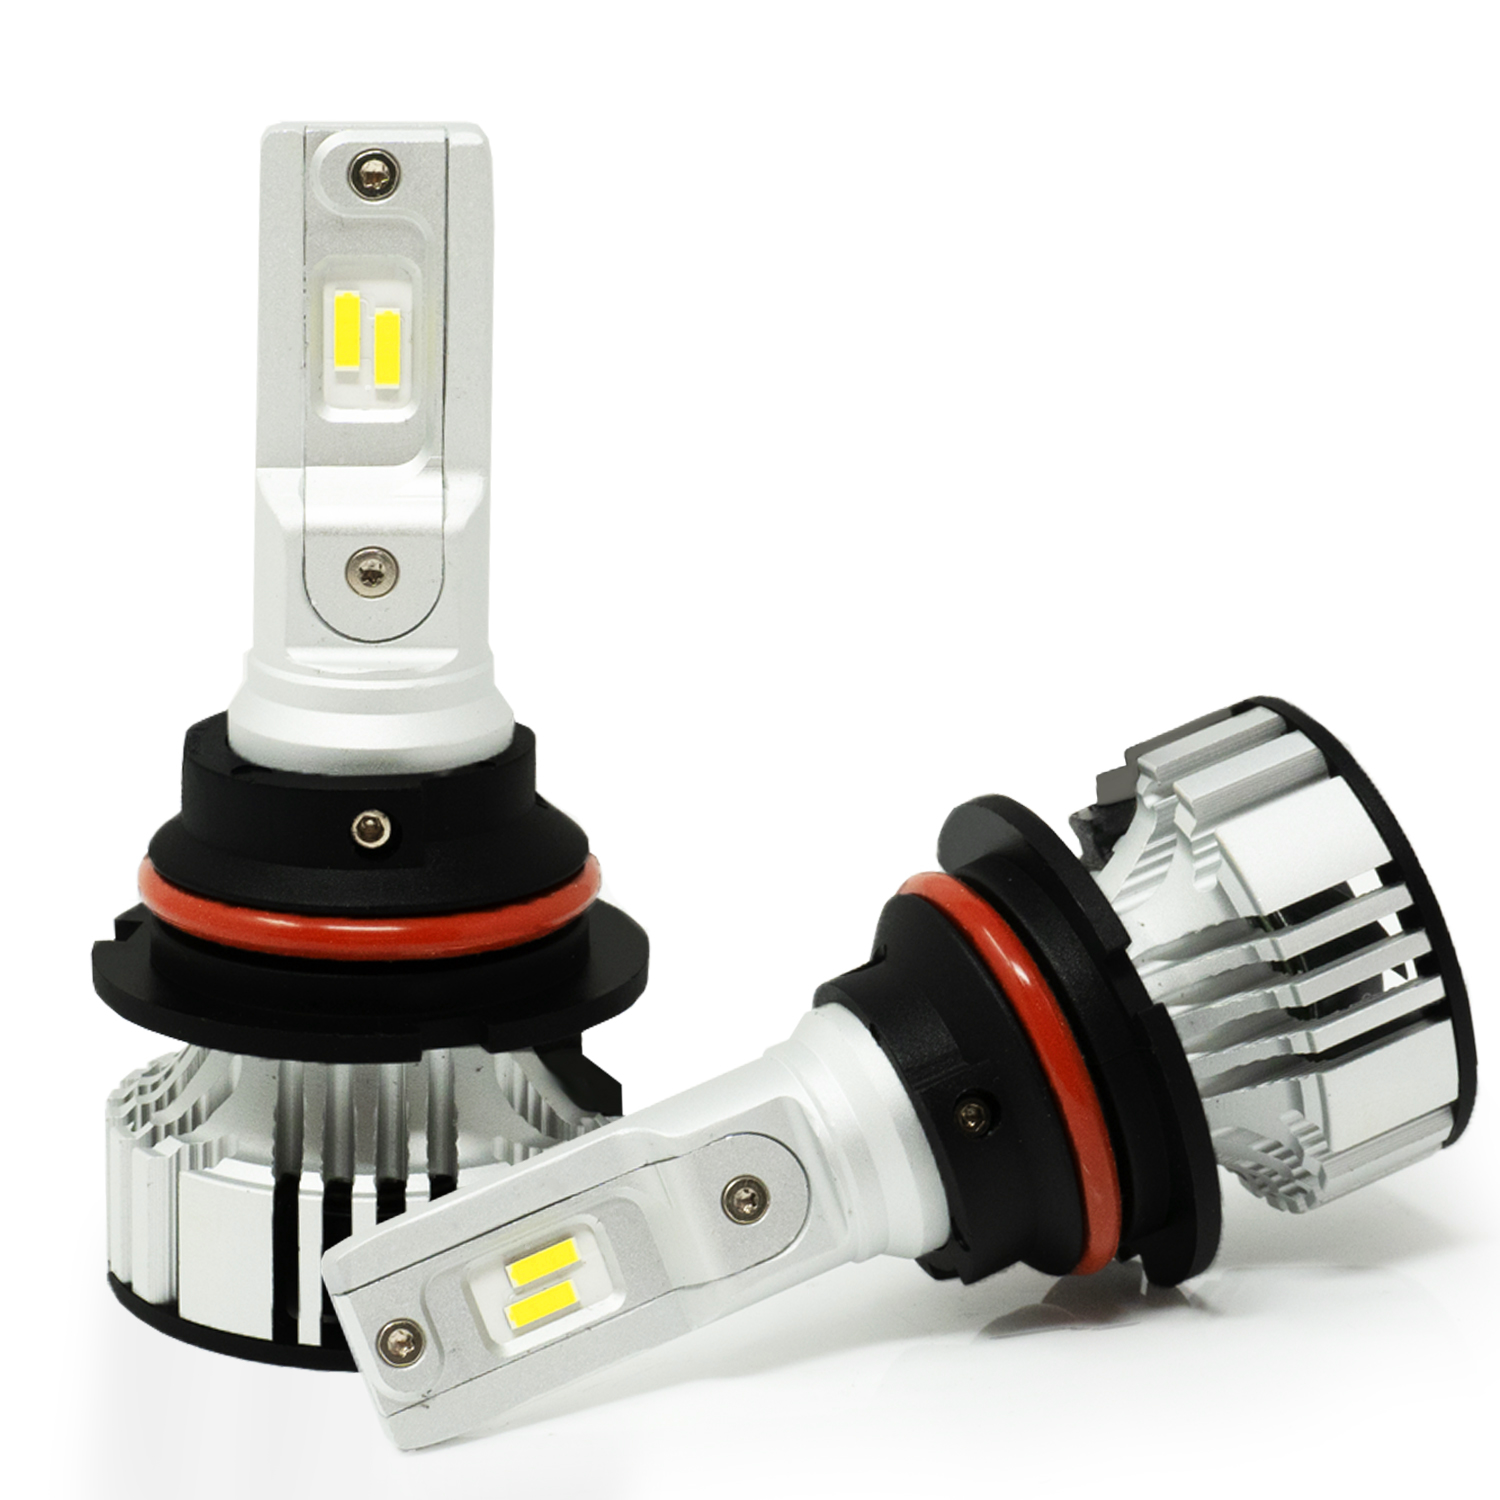 Automotive LED High Low Beam Headlight Bulb for cars, trucks